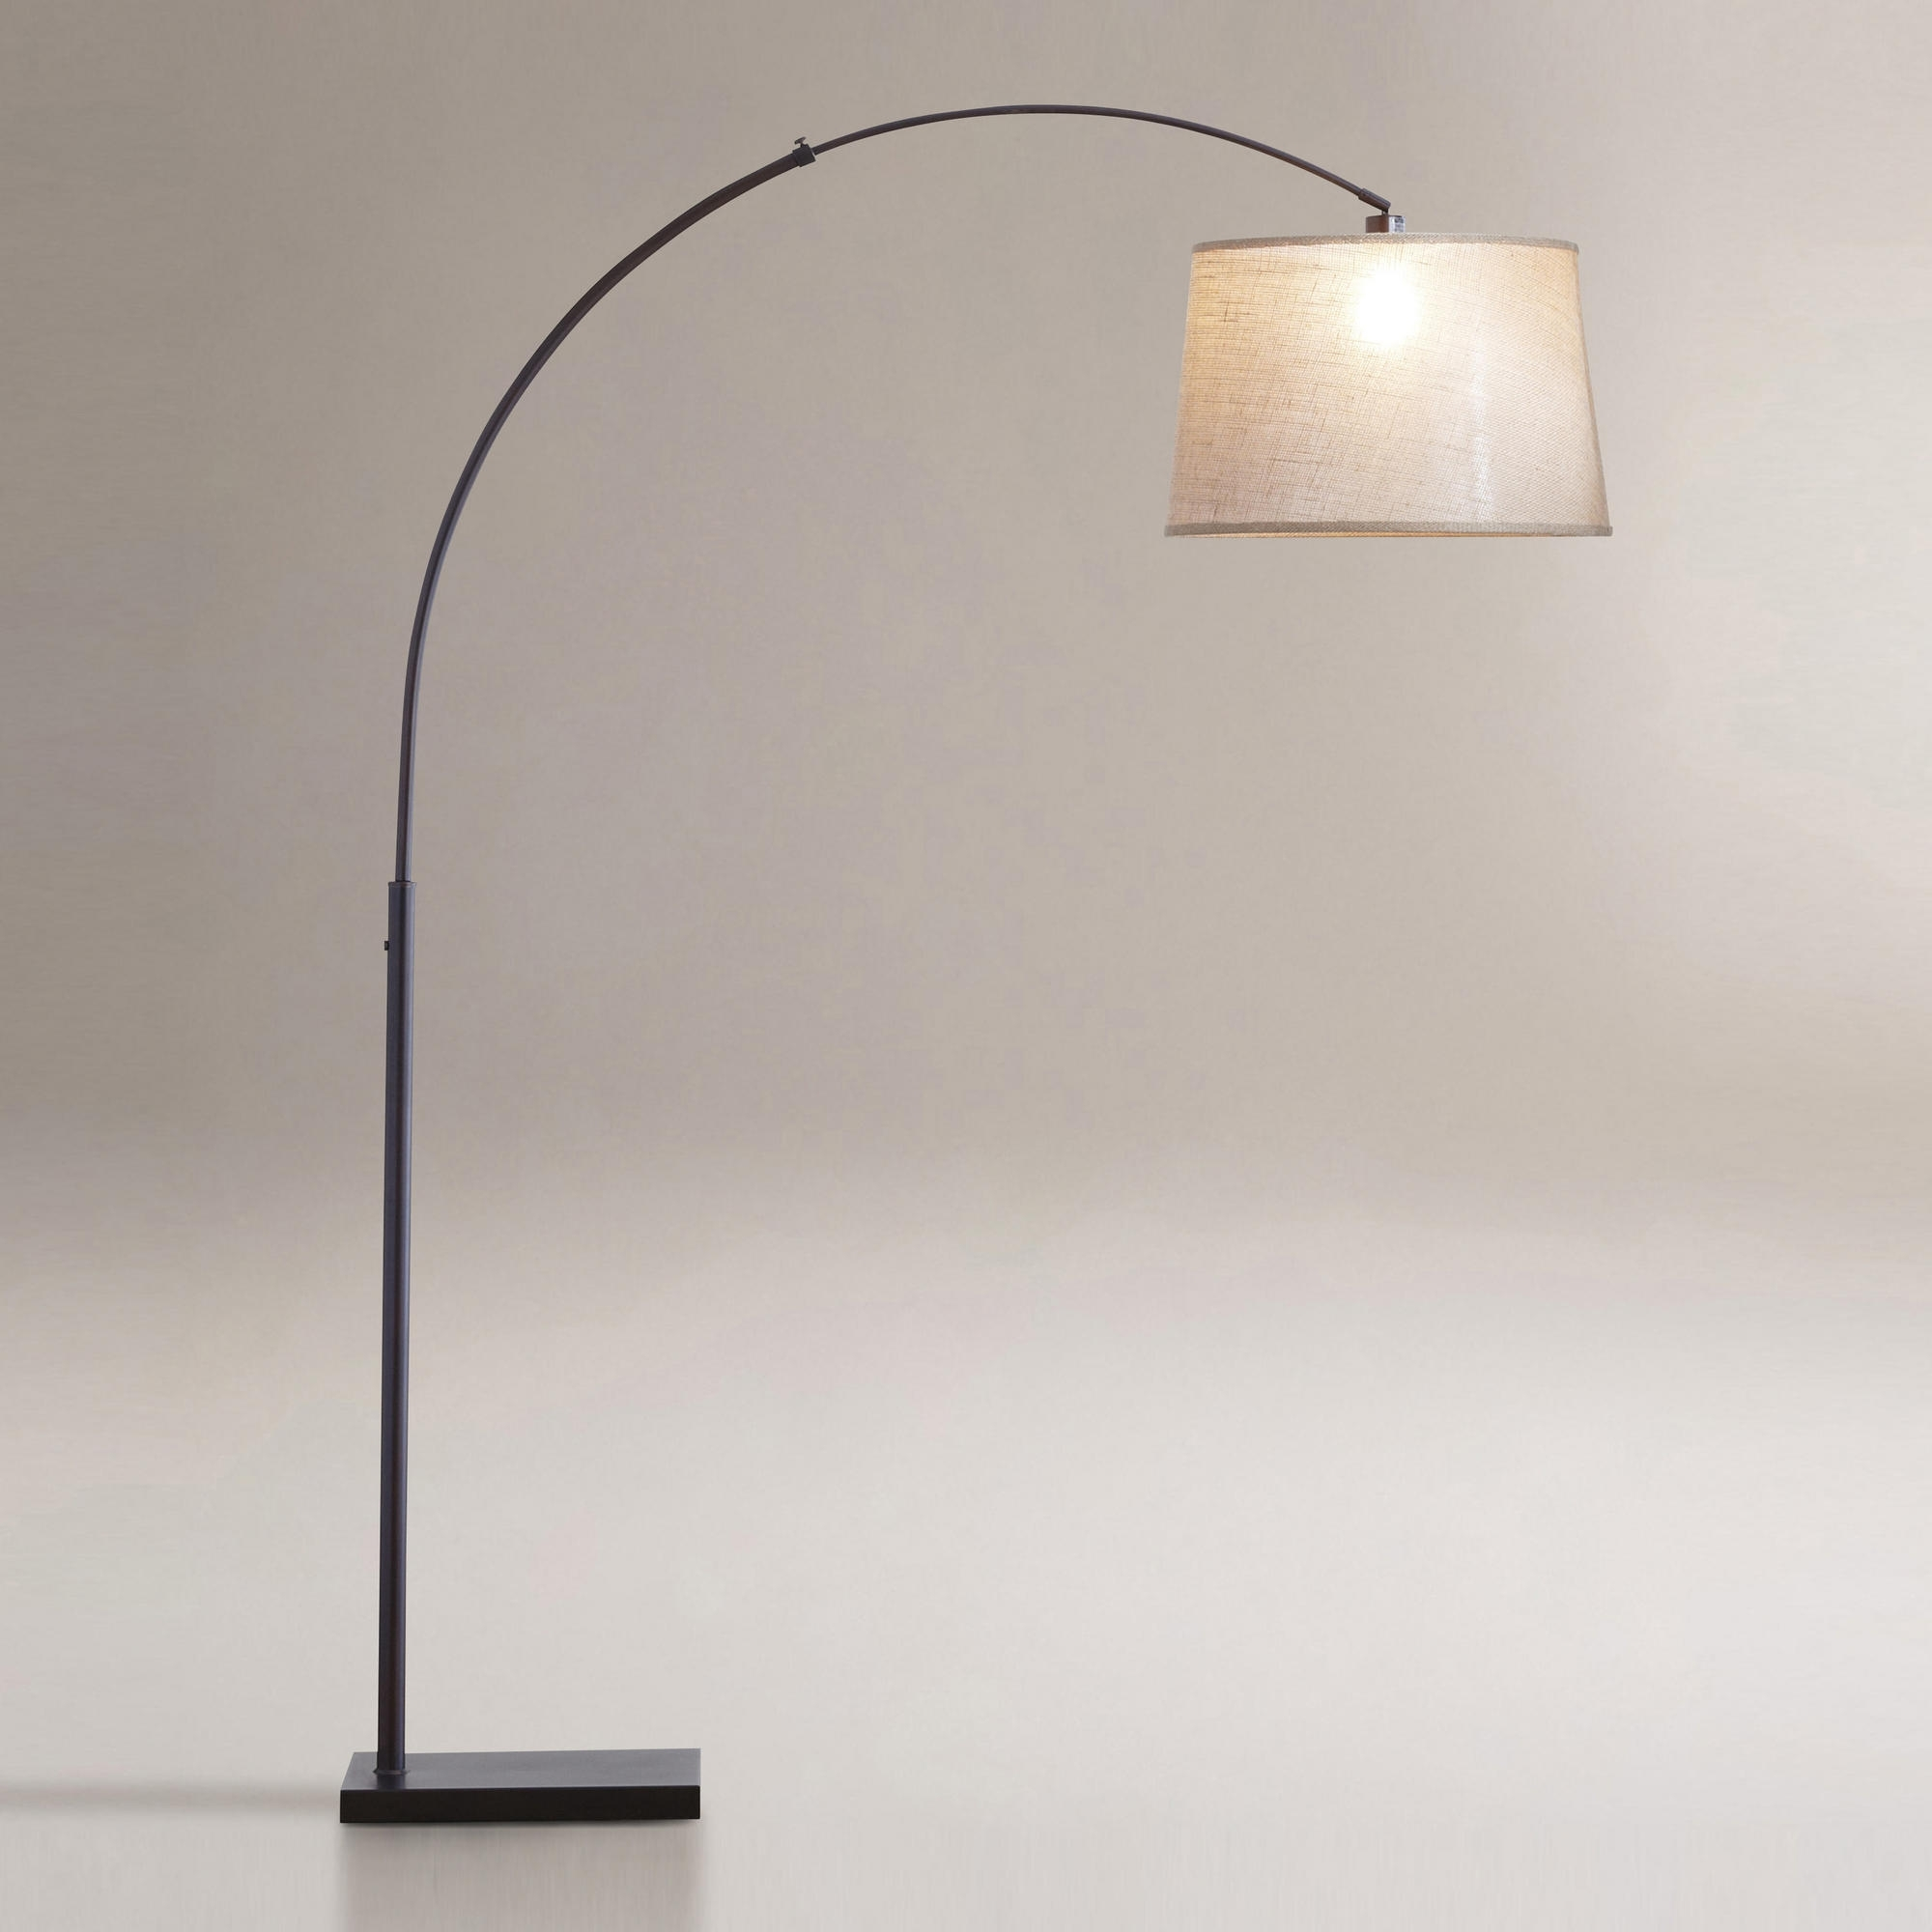 Endearing Cool Table Lamps Modern 2 Traditional Night Floor Lamp Regarding Newest Traditional Living Room Table Lamps (View 17 of 20)